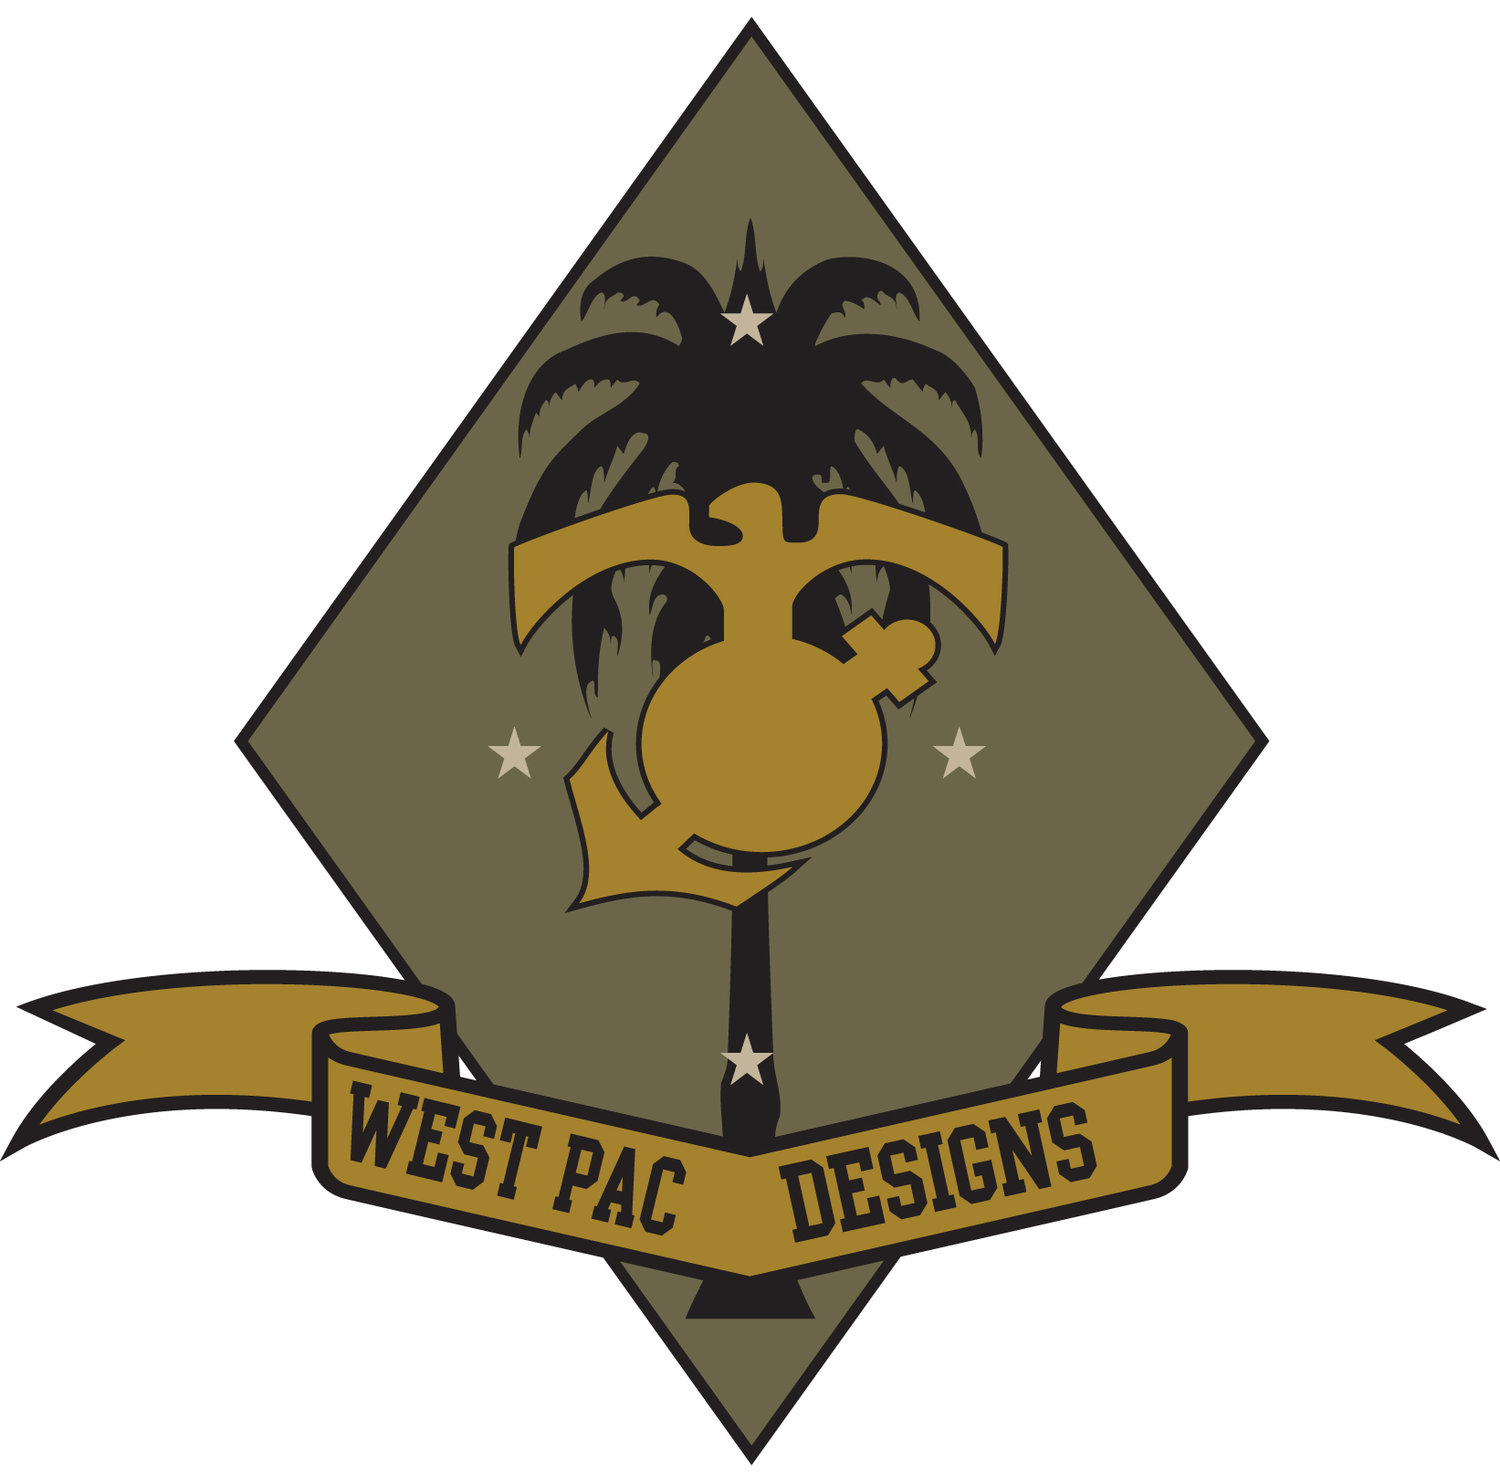 West Pac Designs